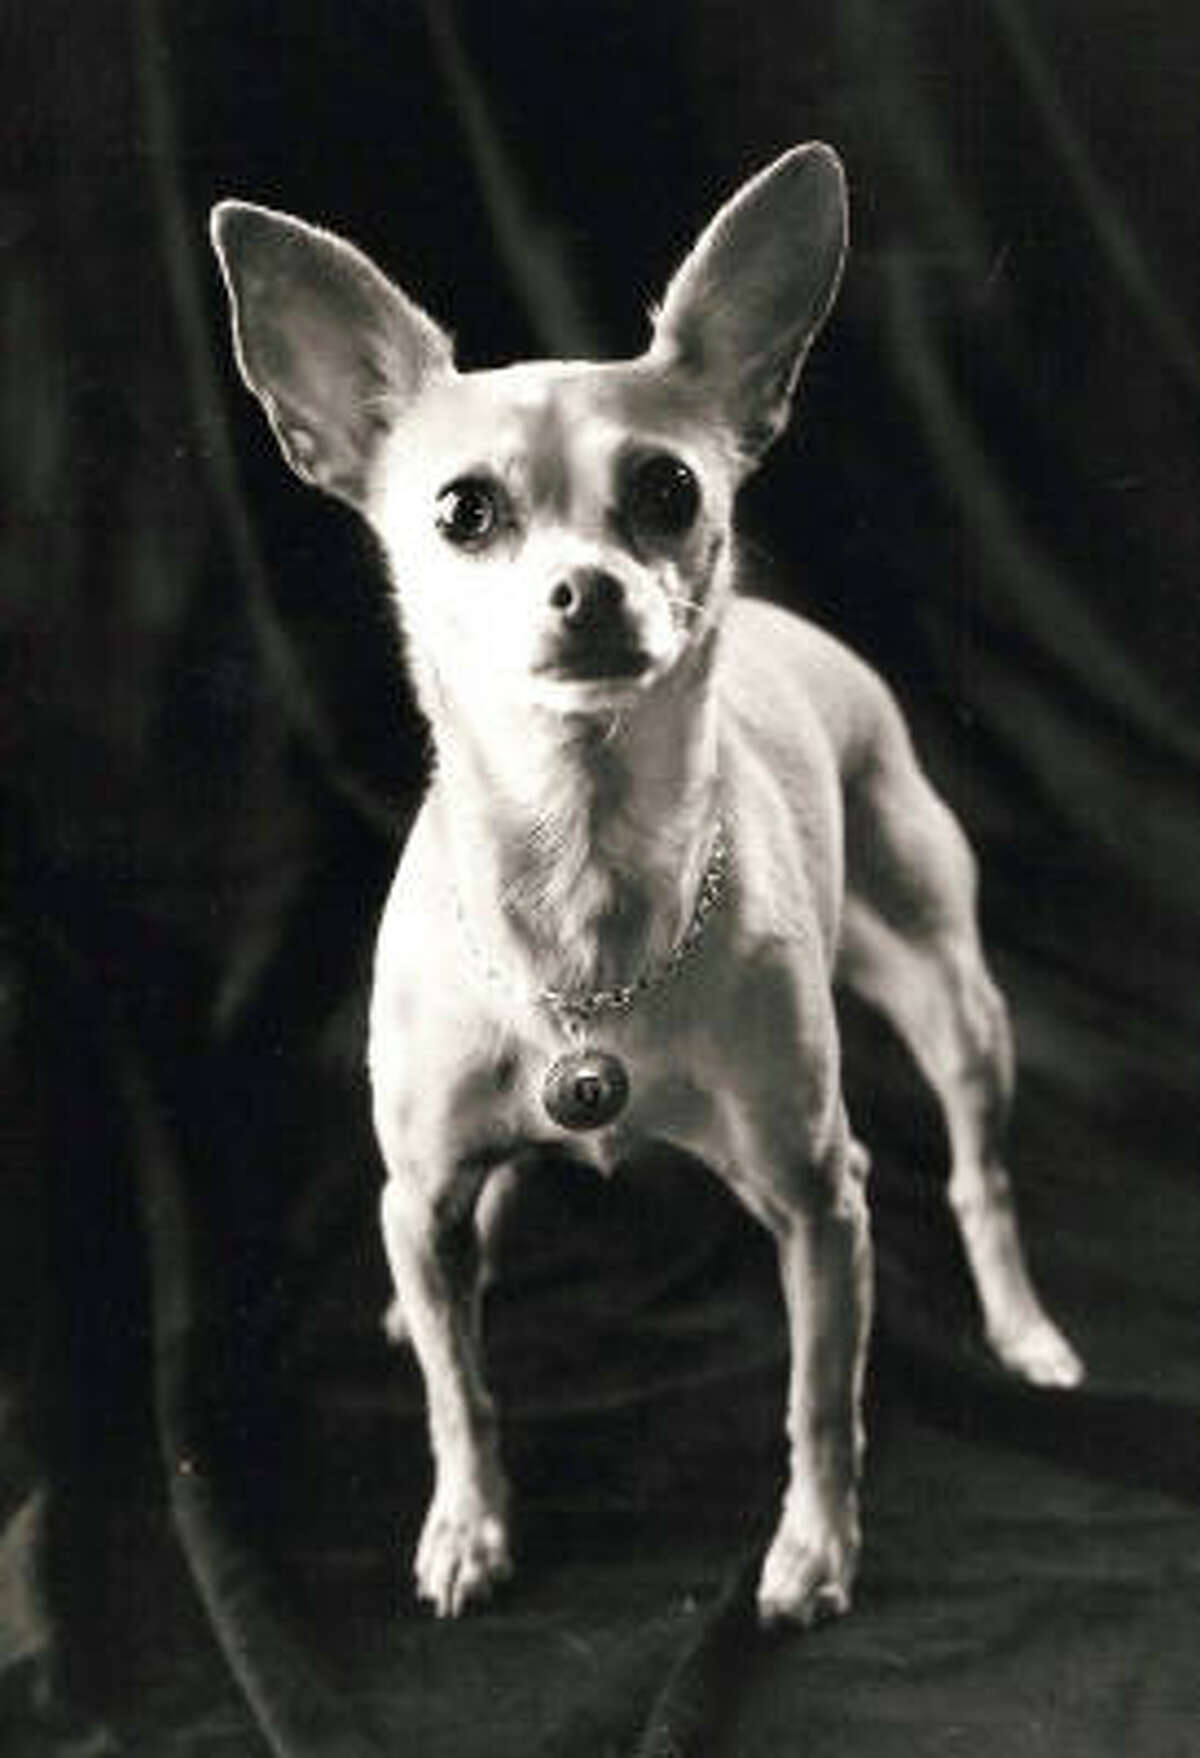 Gidget, the Taco Bell dog: The tiny chihuahua coined the phrase